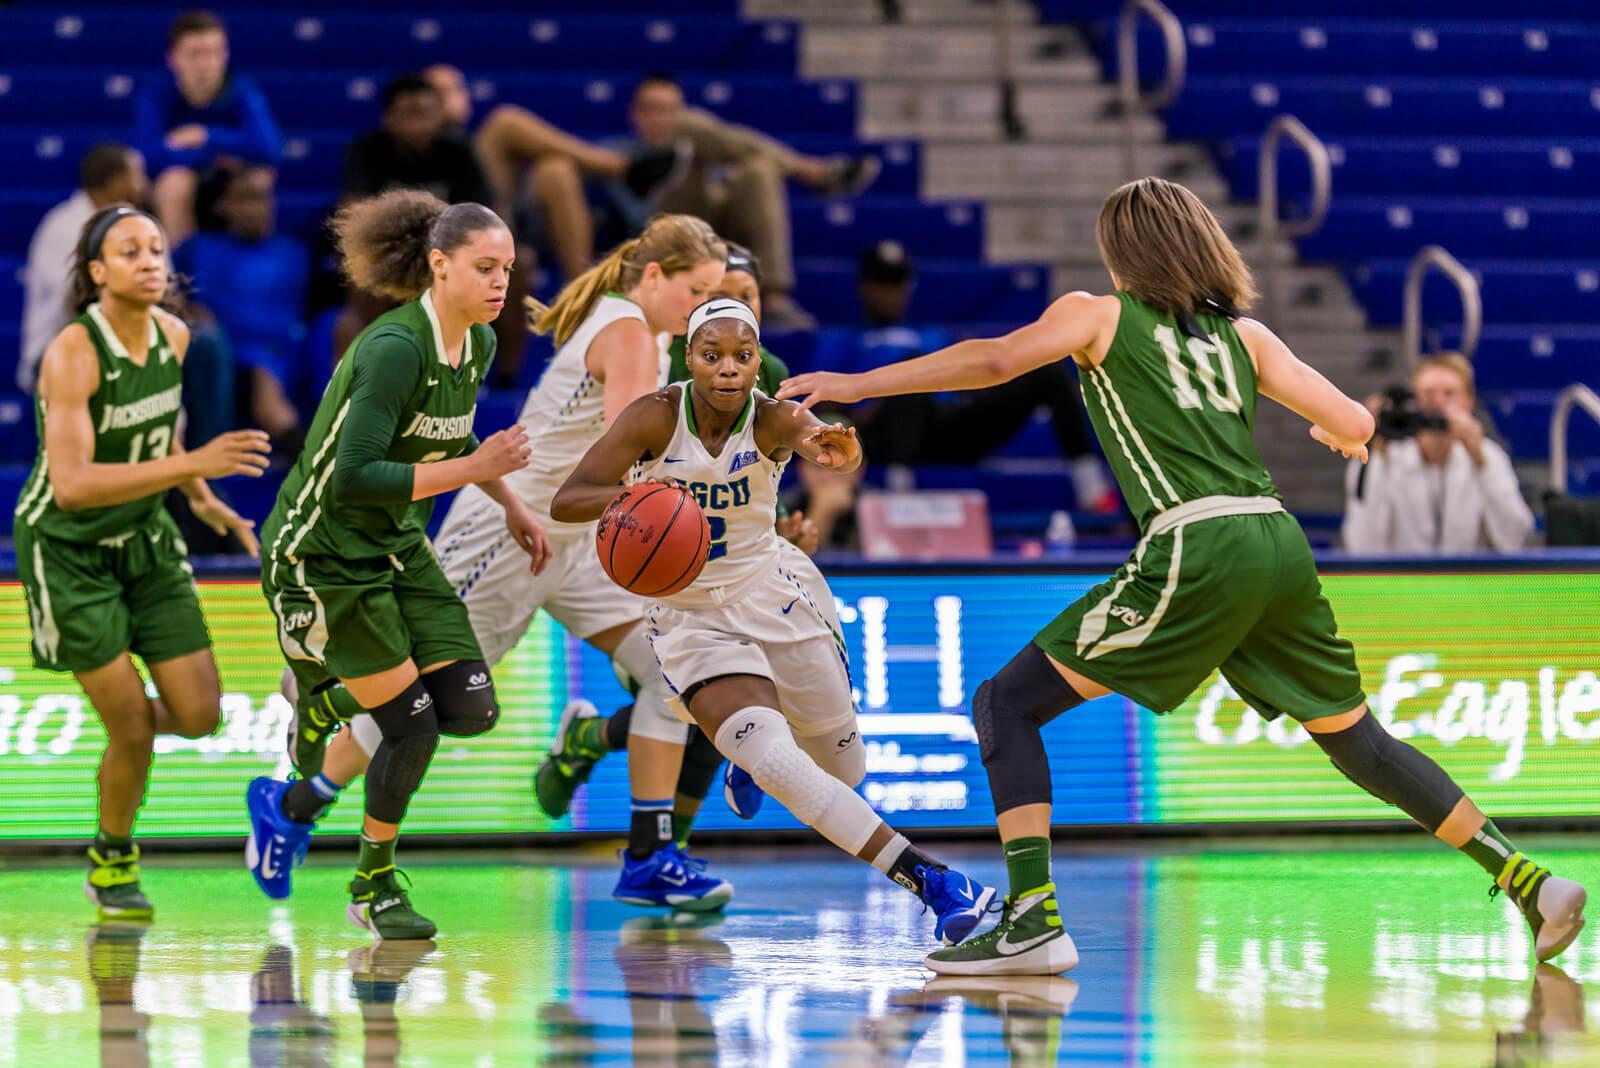 FGCU women's basketball extends win streak to 12 to fly past 6-0 Jacksonville